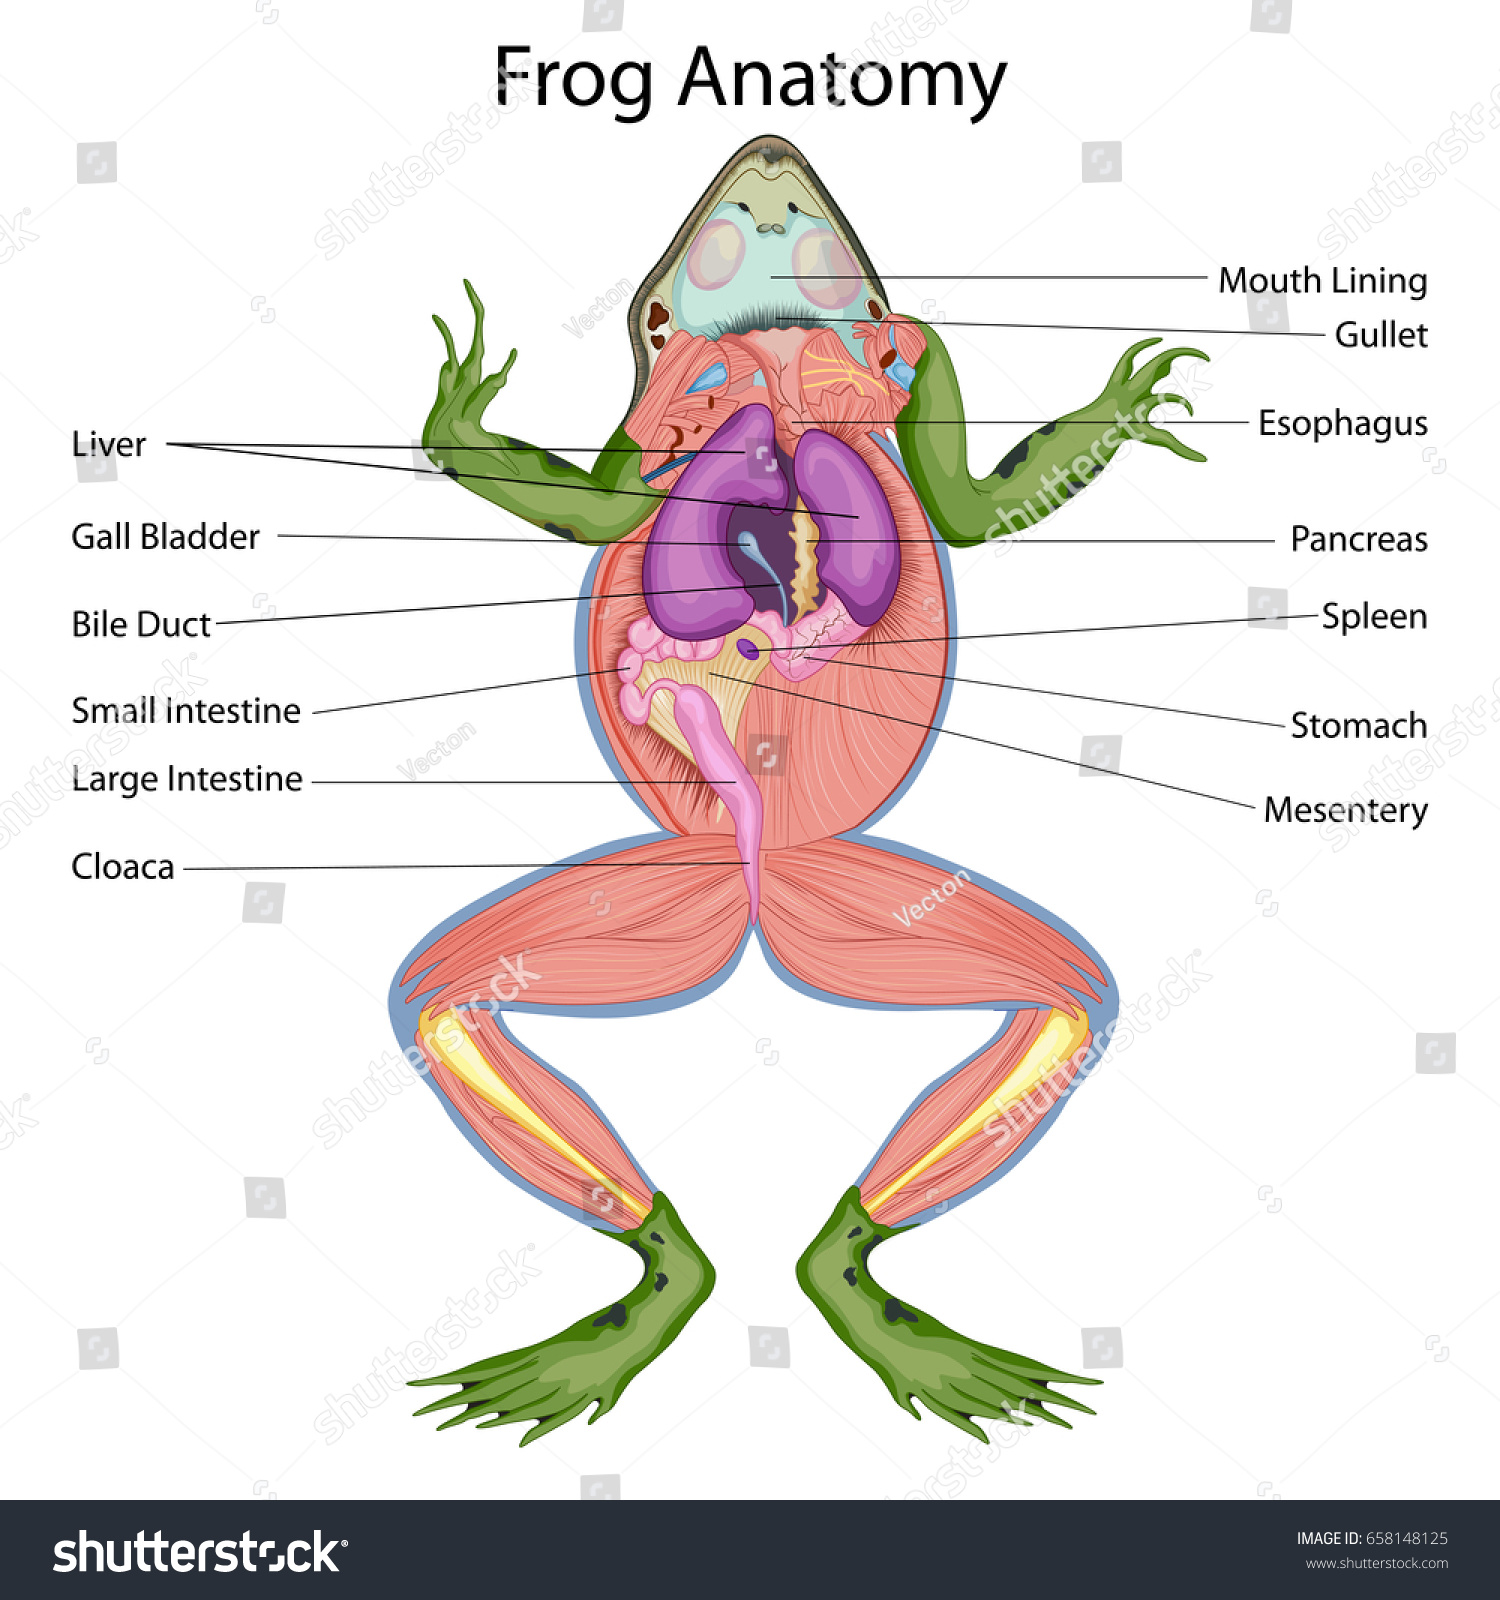 frog inside diagram 2003 mitsubishi eclipse gs stereo wiring education chart biology dissected body stock vector